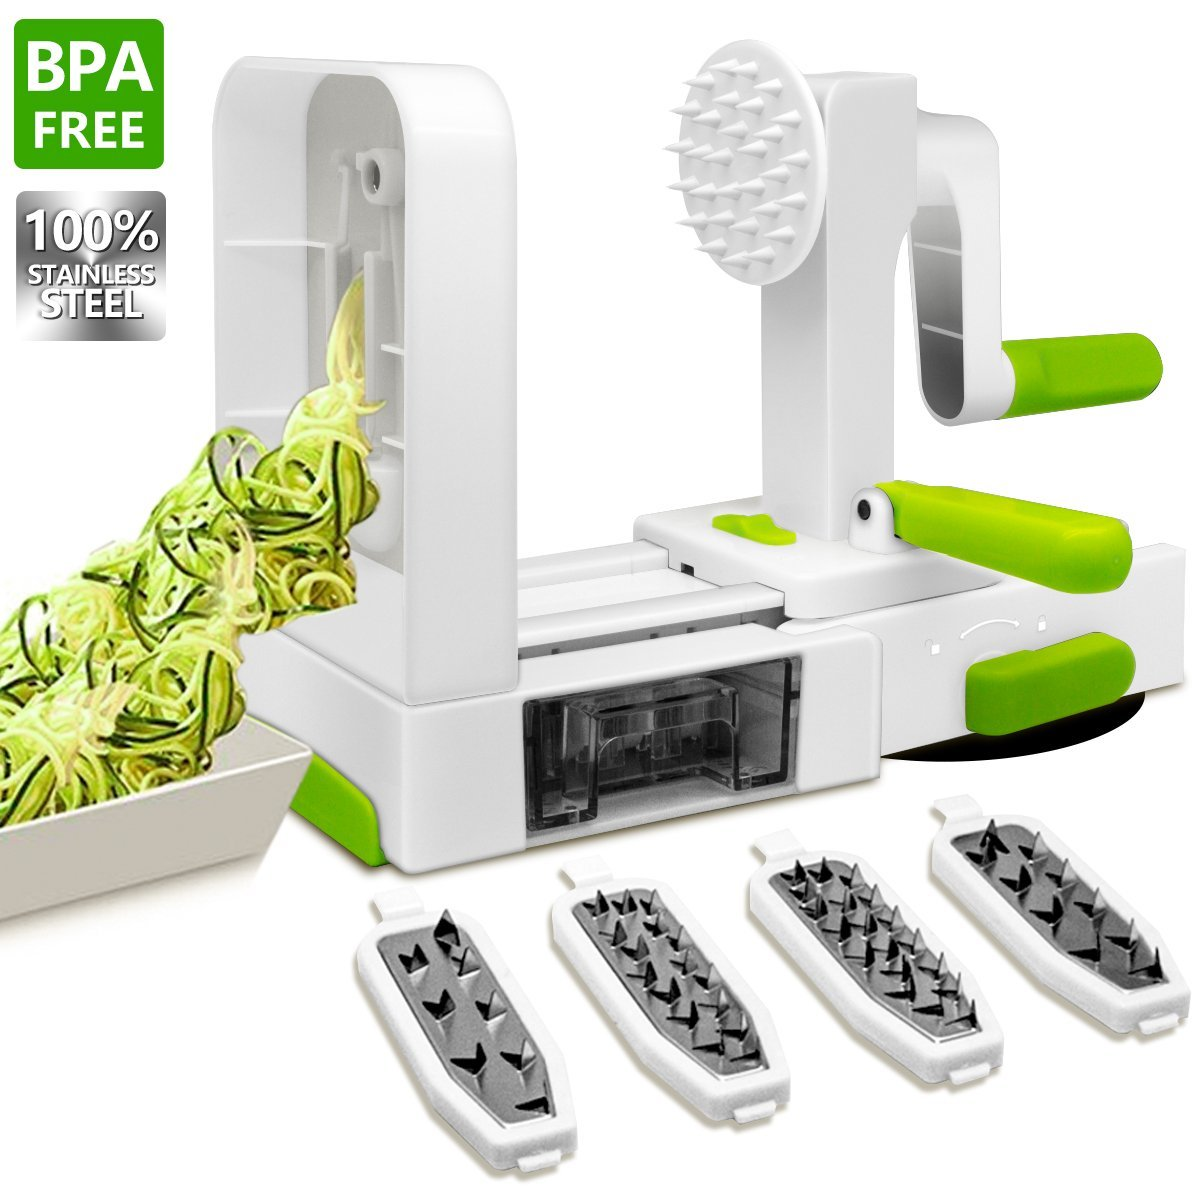 Vegetable Spiral Slicer, ANKO 100% Stainless-Steel Blades BPA FREE Spiral Slicer, 5-Blade Best Fruits and Veggie Pasta and Spaghetti Maker for Low Carb,Gluten-Free Meals with Extra Blade Caddy (1PACK)